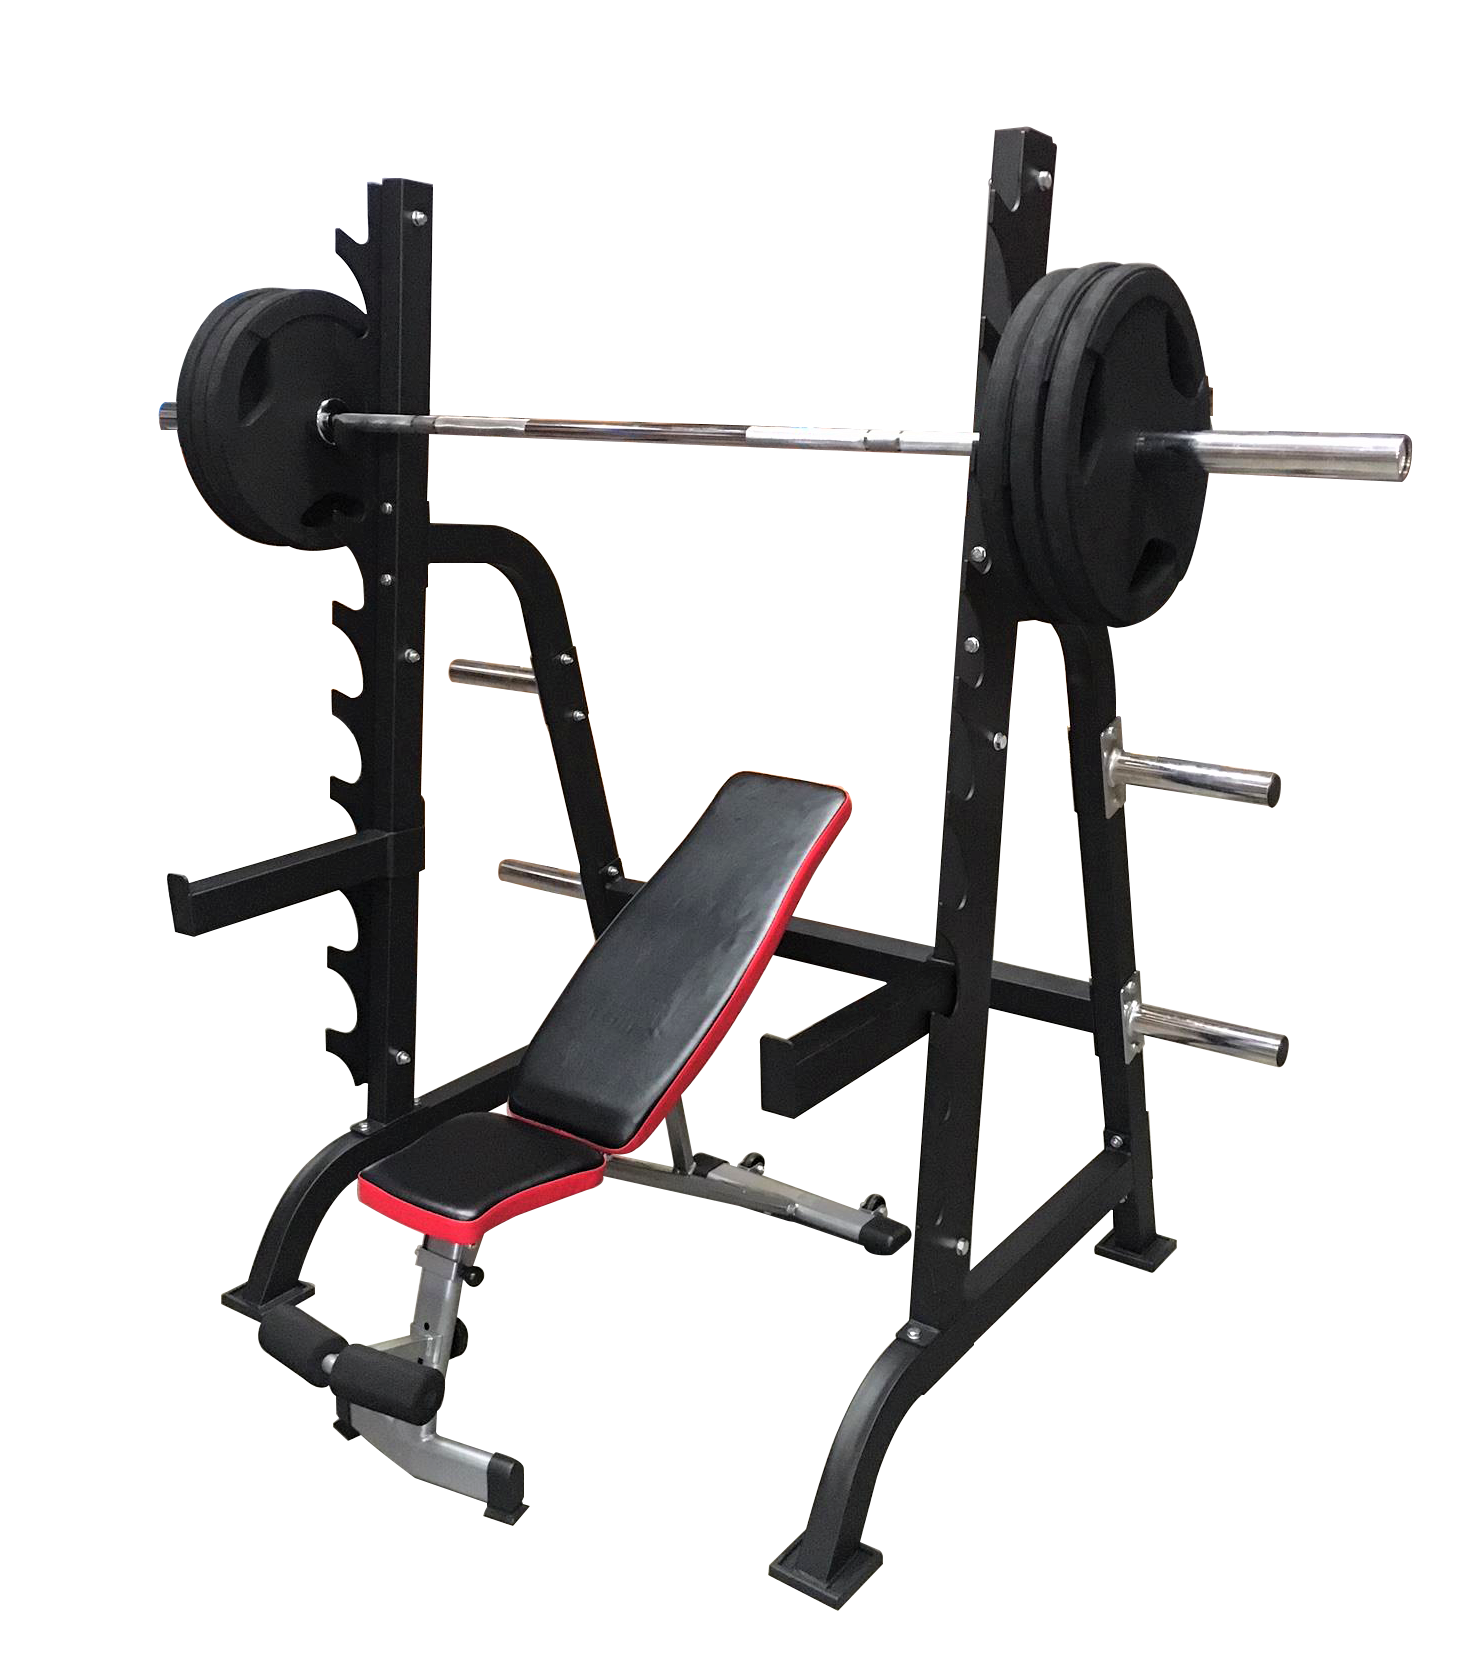 racks for by squat strength equipment sale wide fitness ship aust perth renouf online in rack